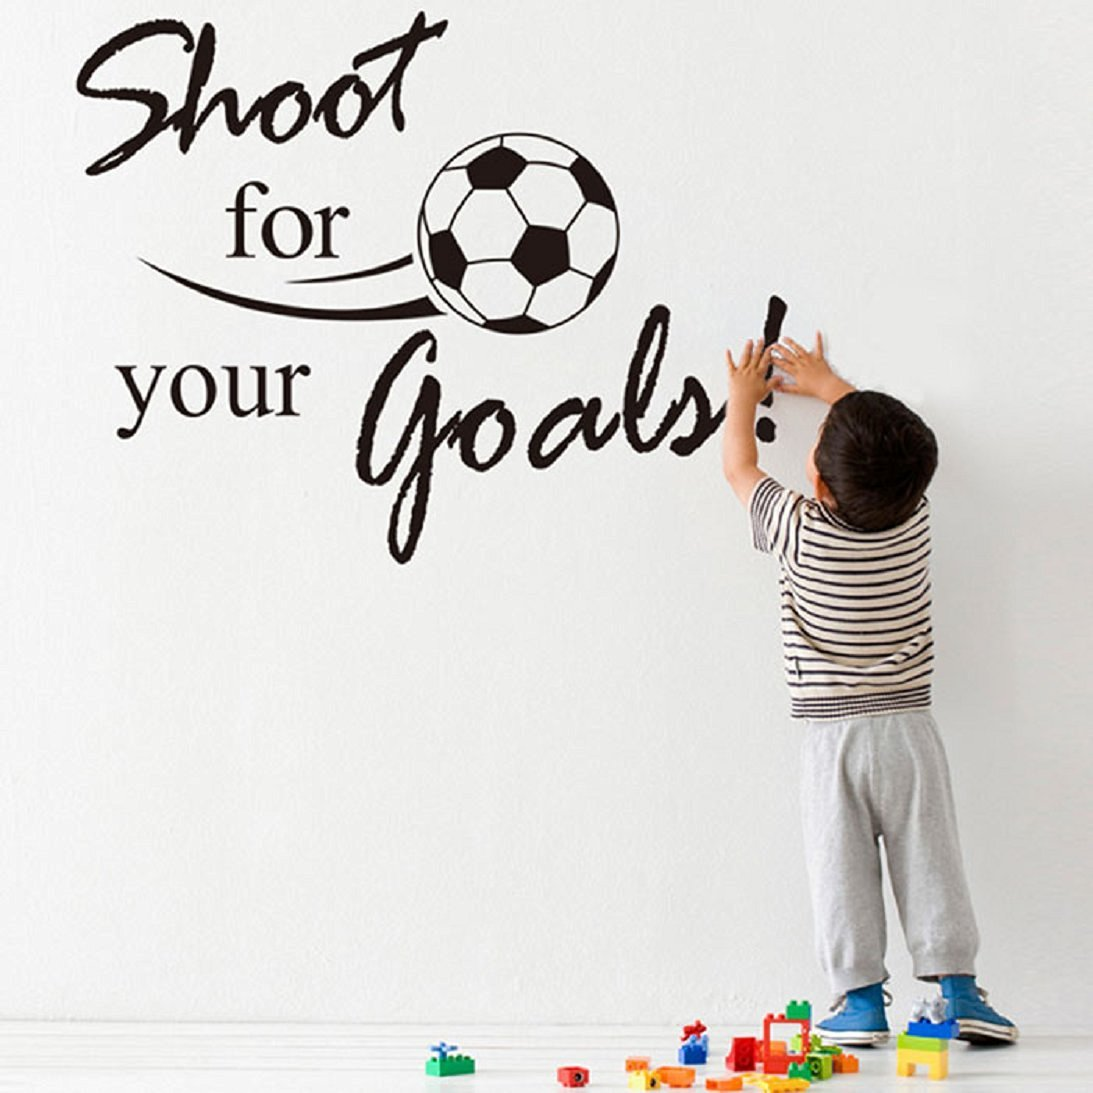 AutumnFall® New New Shoot For Your Goals Football Soccer Removable Decal Wall Sticker Home Decor